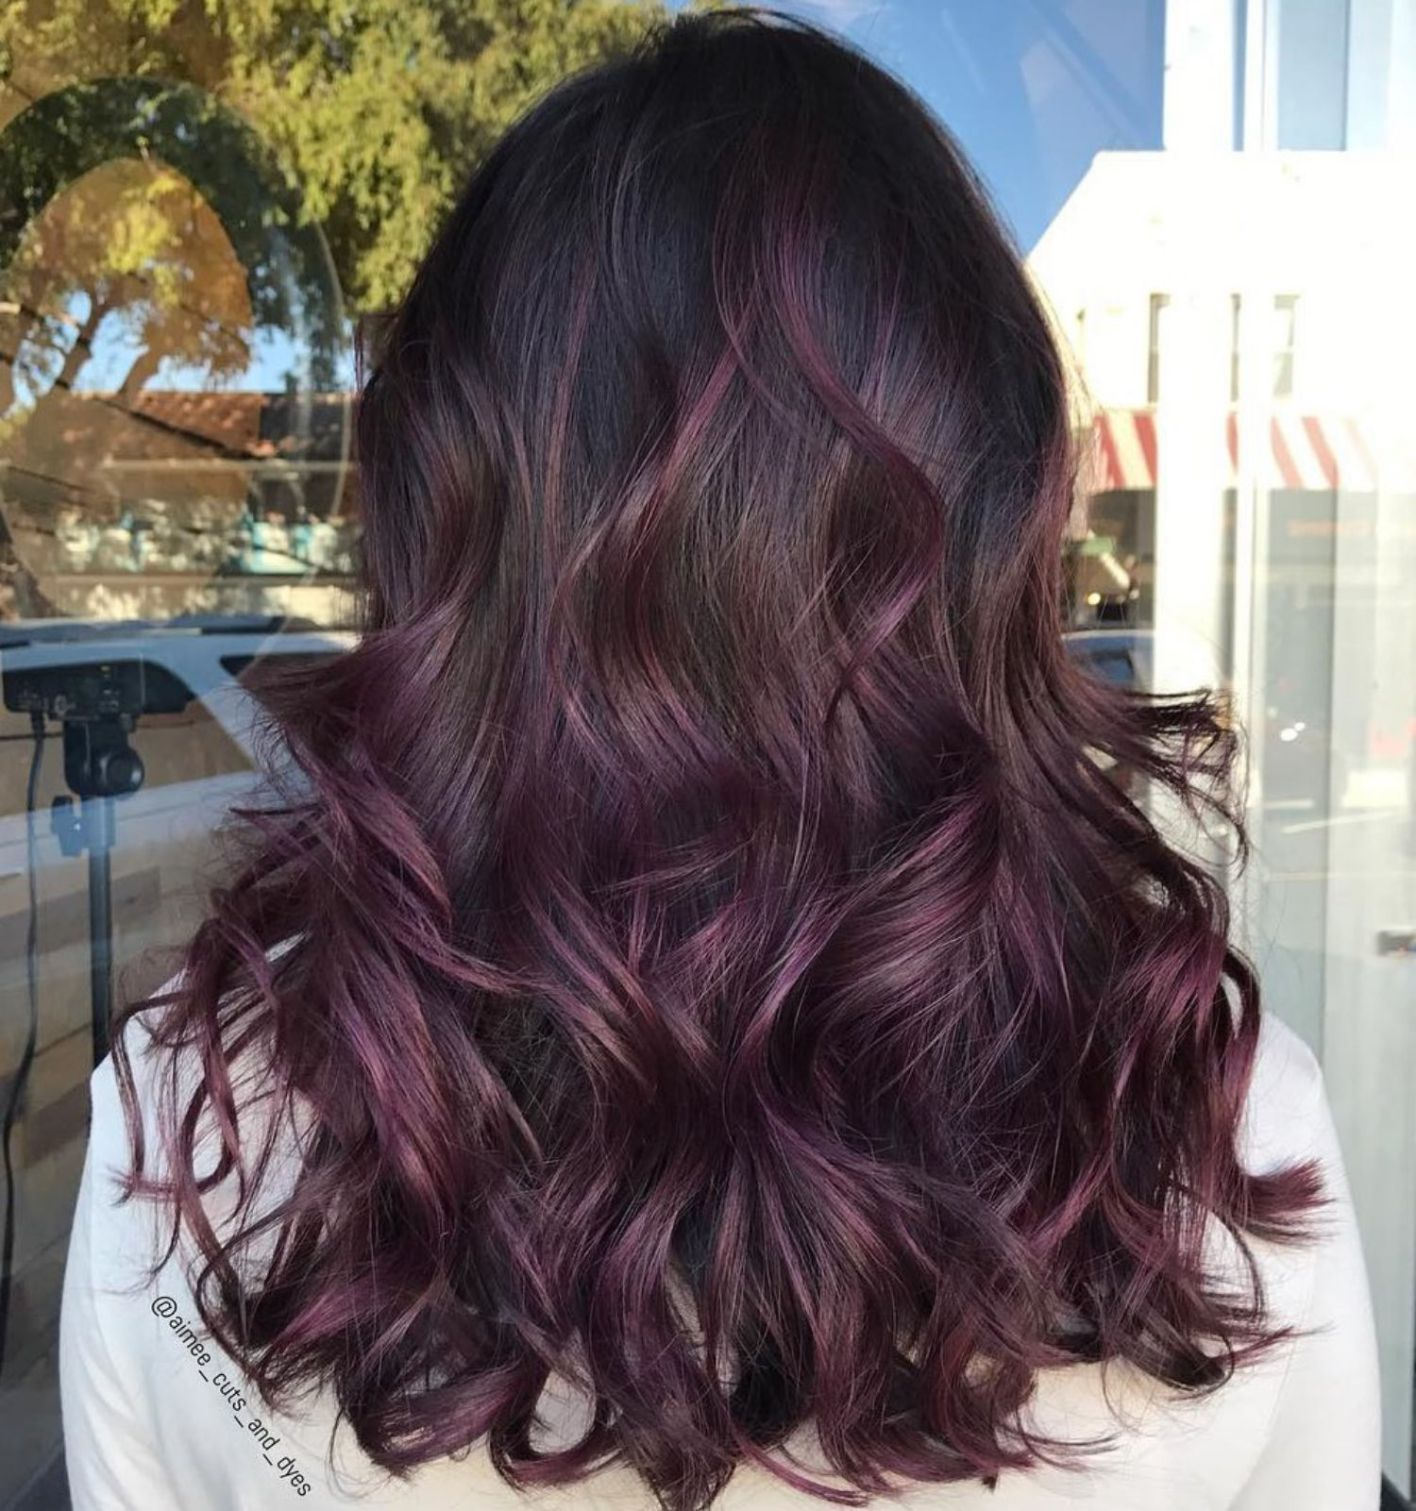 Shades of Burgundy Hair Dark Burgundy Maroon Burgundy with Red